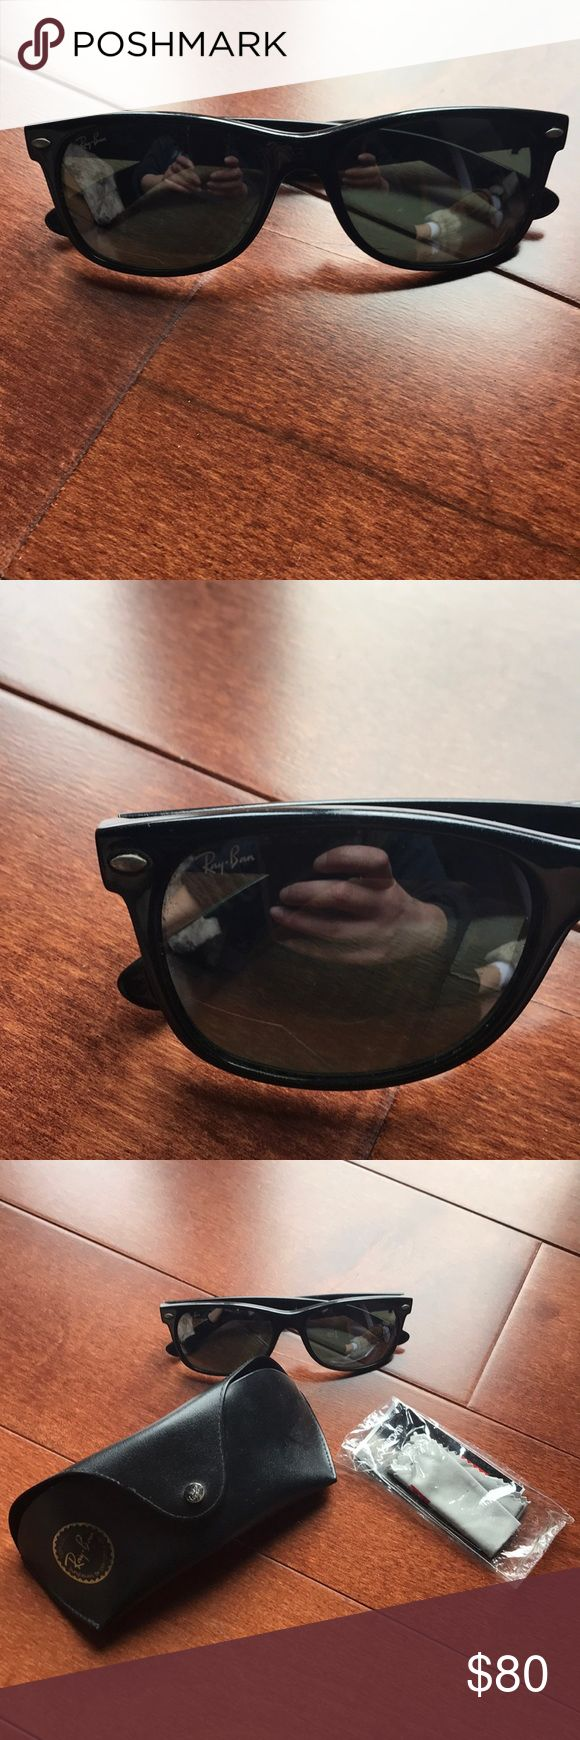 Ray-Ban Wayfarer Black Ray-Ban Wayfarer in excellent used condition. Includes case, cloth, and manufacturer's information note. Ray-Ban Accessories Sunglasses